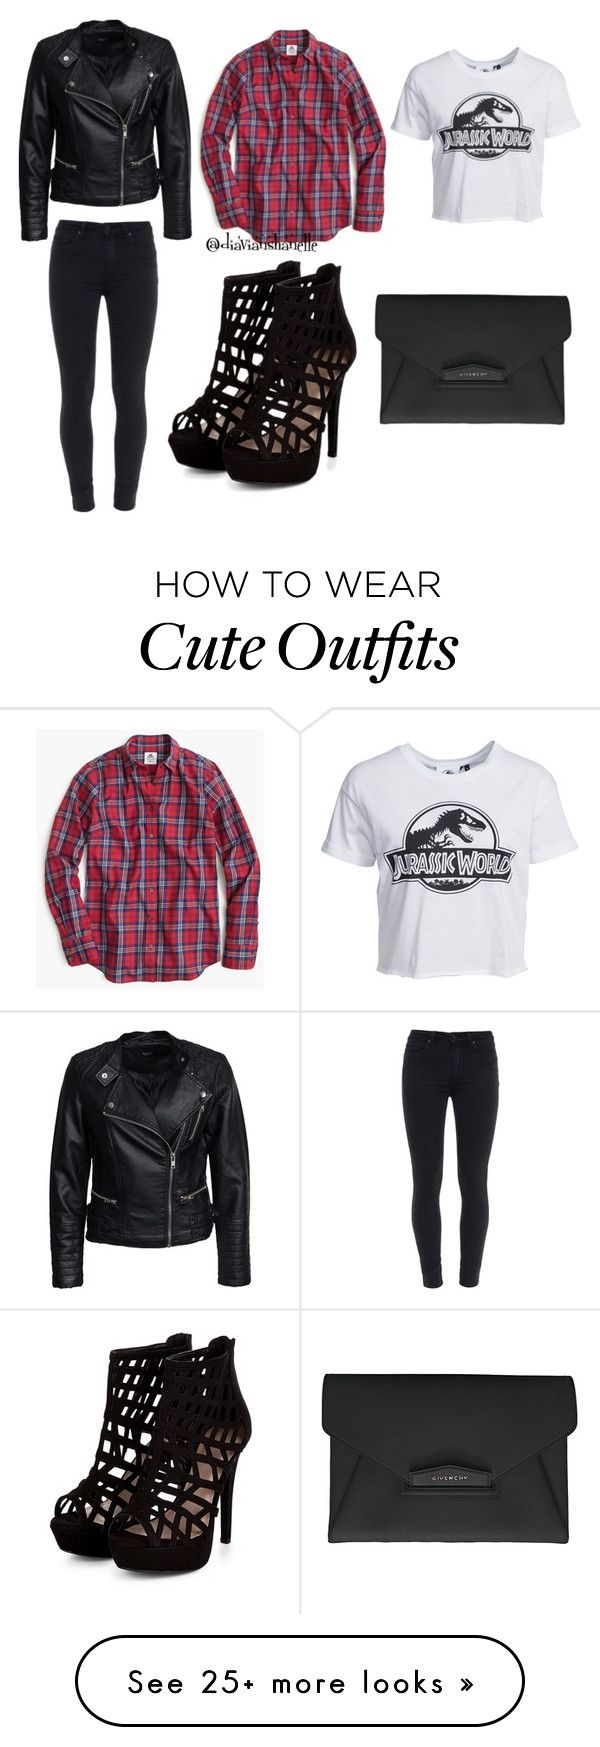 """""""Cute Outfit"""" by diavianshanelle on Polyvore featuring New Look, Thomas Mason, Paige Denim, Sisters Point, Givenchy, women's clothing, women's fashion, women, female and woman"""